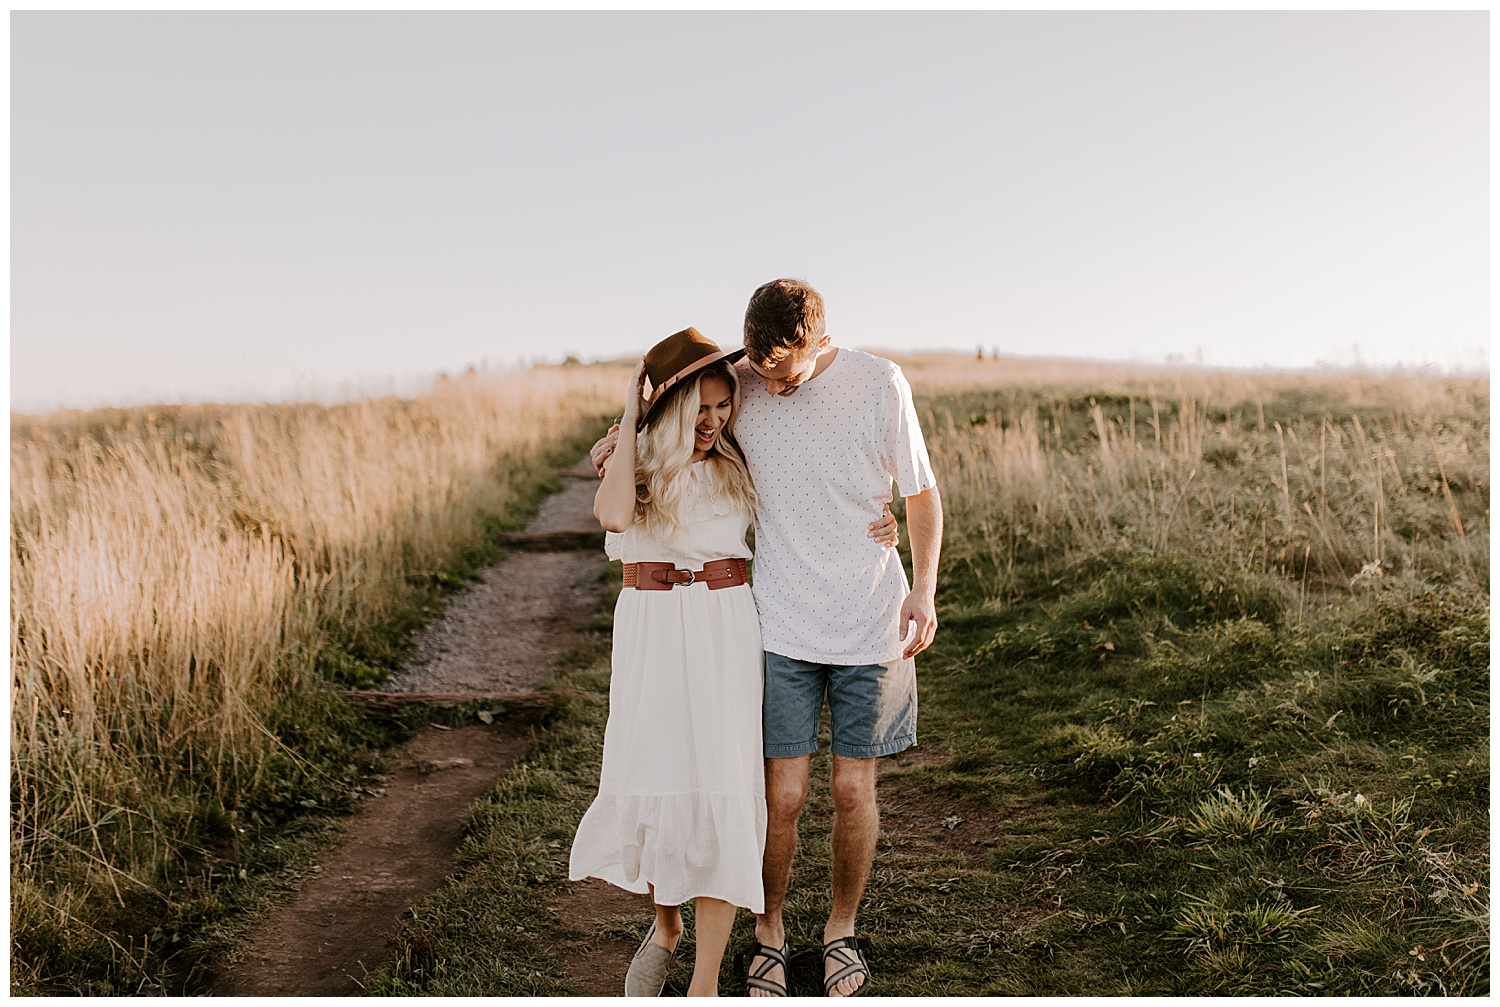 HANNAH_NICK_MAXPATCH_ENGAGEMENT2019-09-05_0043.jpg